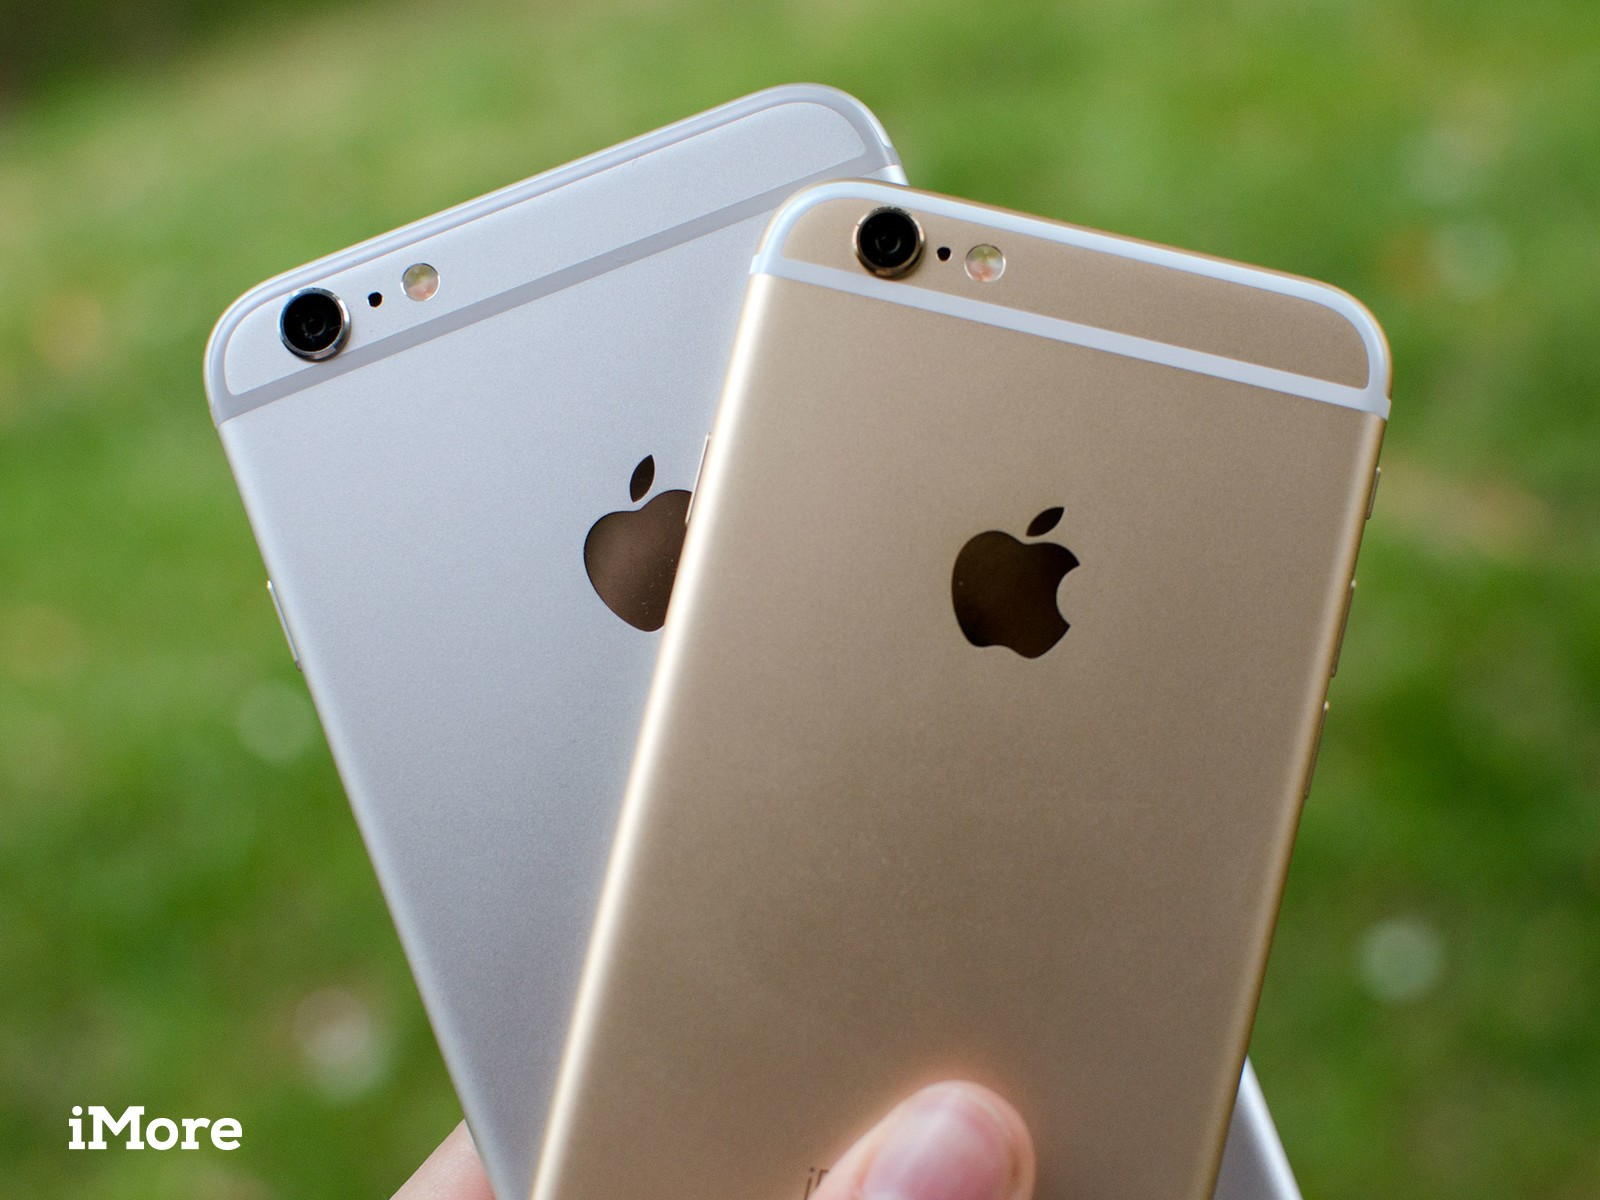 Apple takes top smartphone vendor spot in China thanks to iPhone 6, 6 Plus